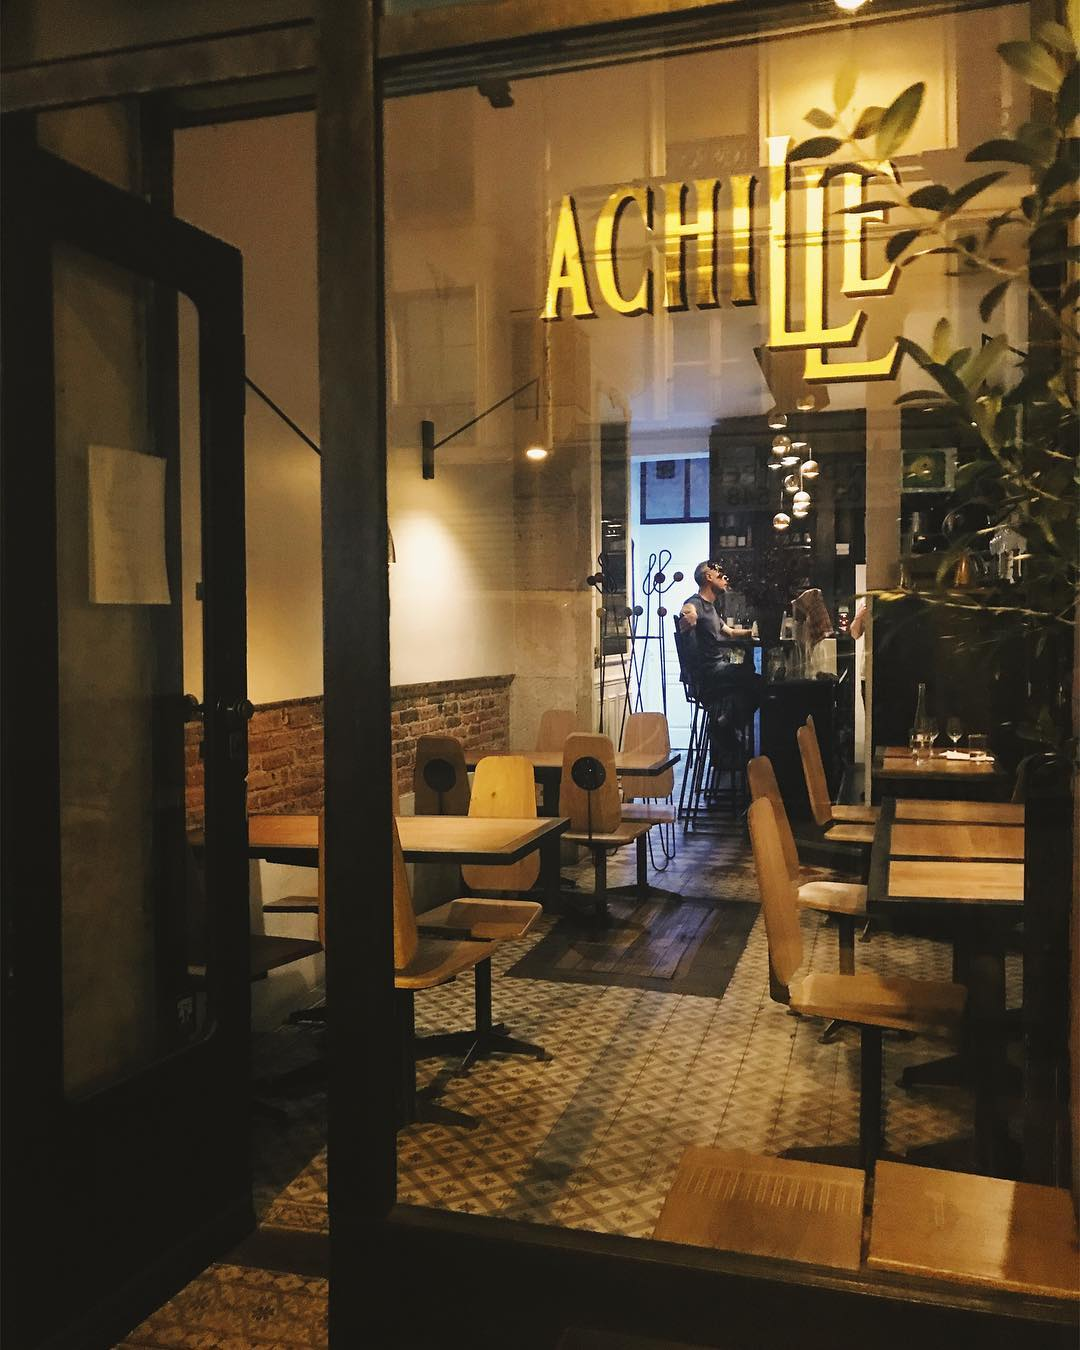 Where to Eat: Achille